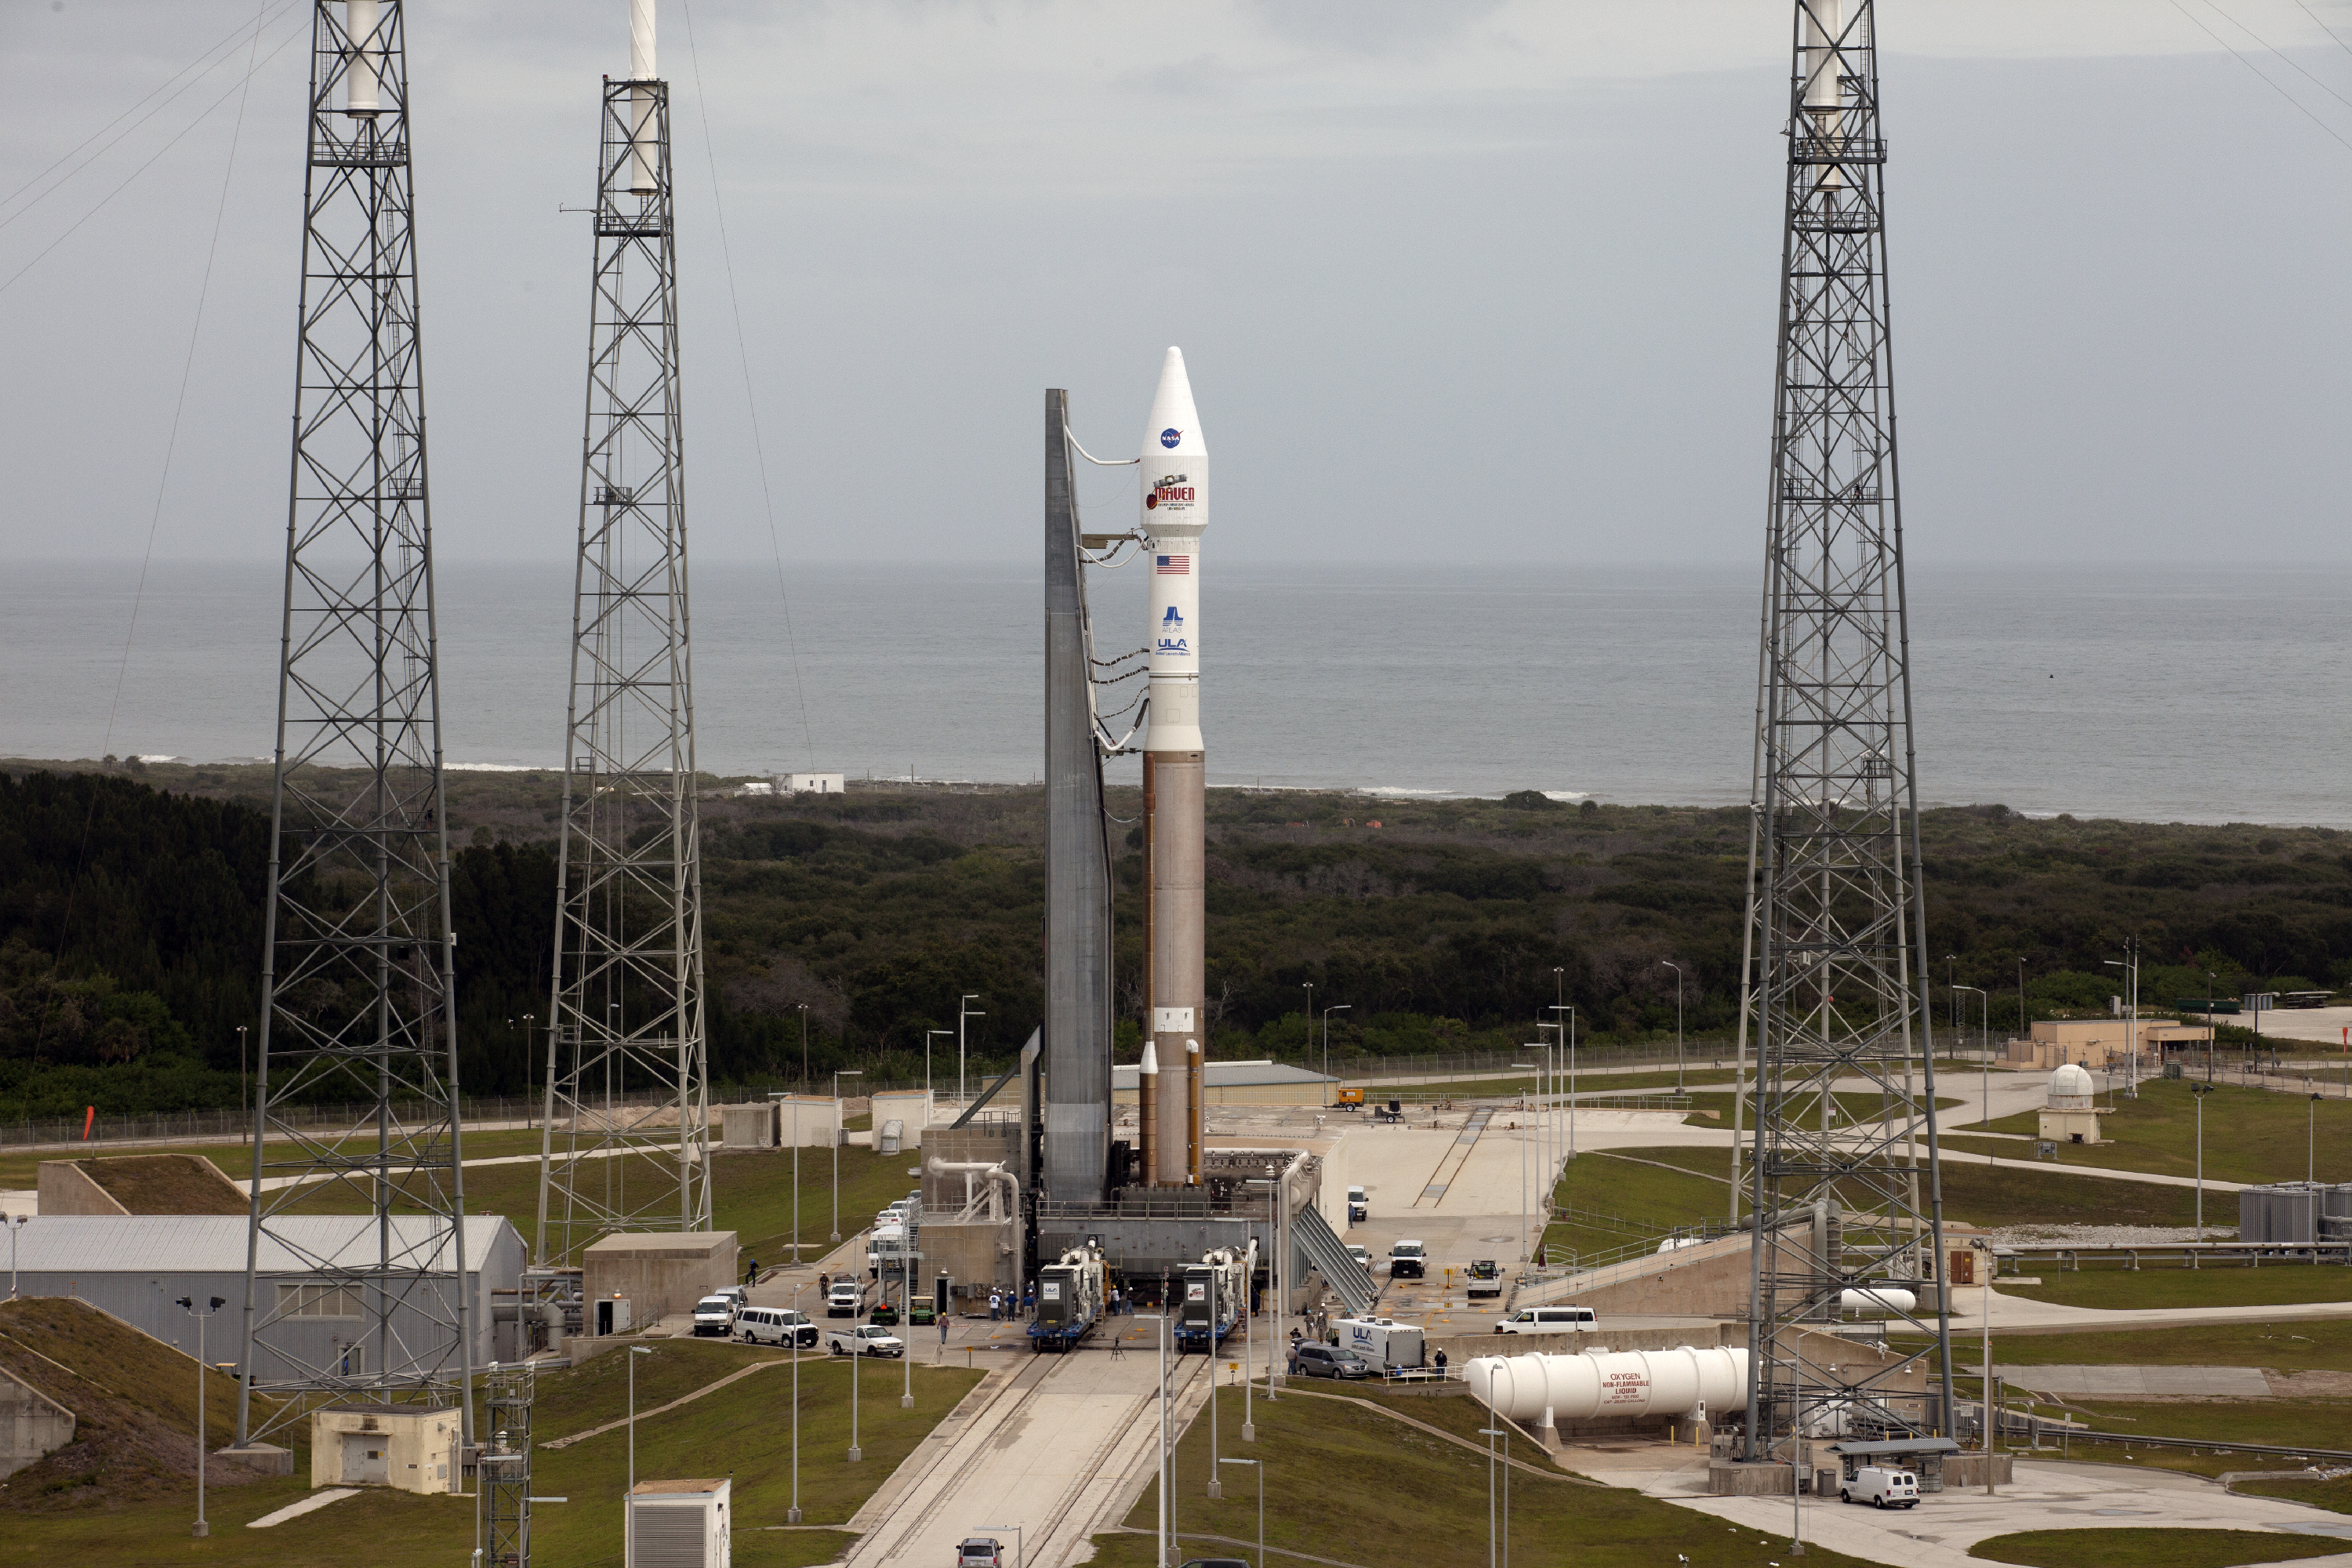 NASA MAVEN Probe at Launch Pad